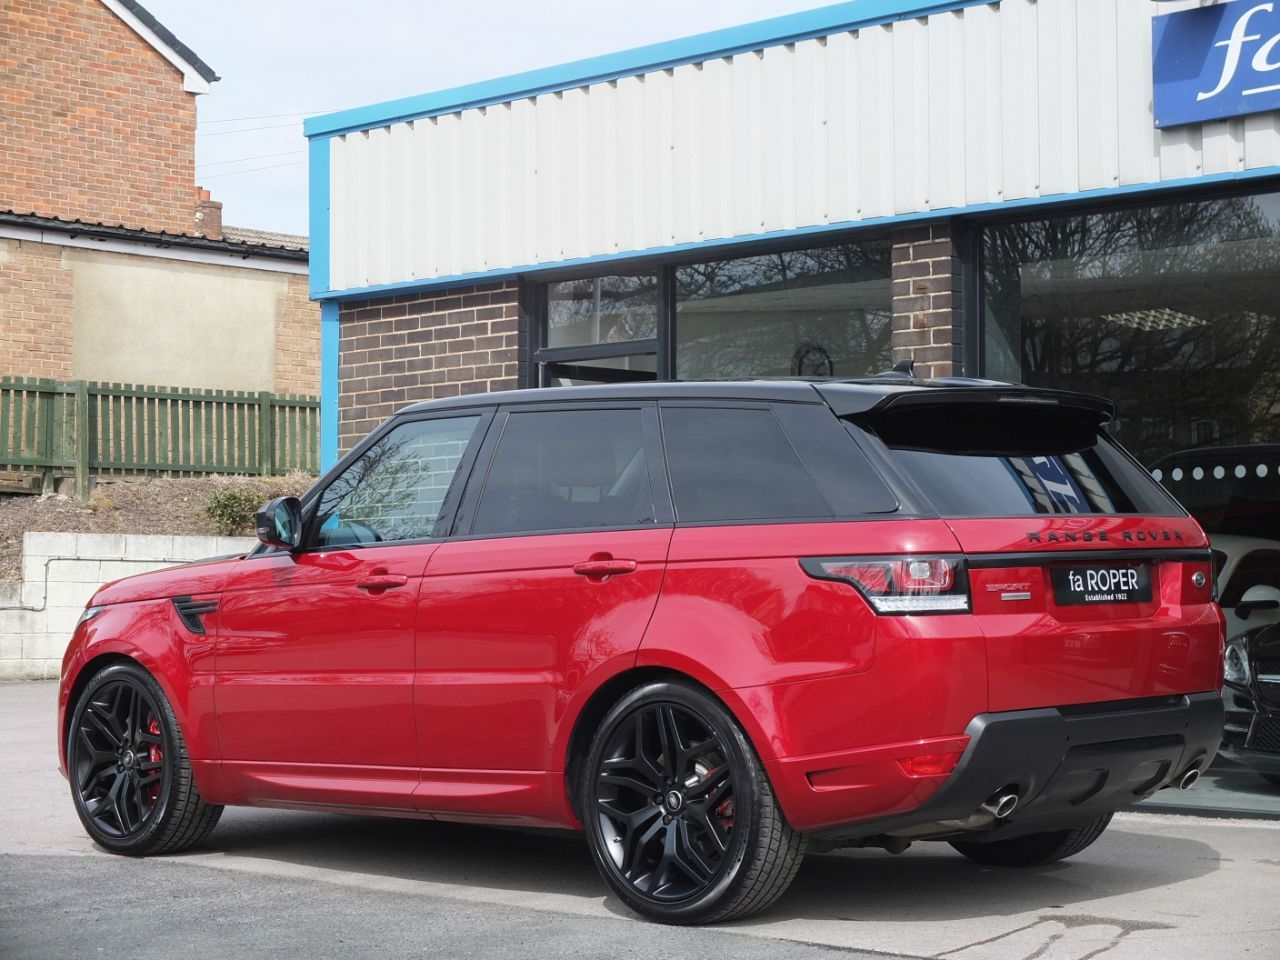 Land Rover Range Rover Sport 3.0 SDV6 [306] Autobiography Dynamic Auto Estate Diesel Firenze Red Metallic